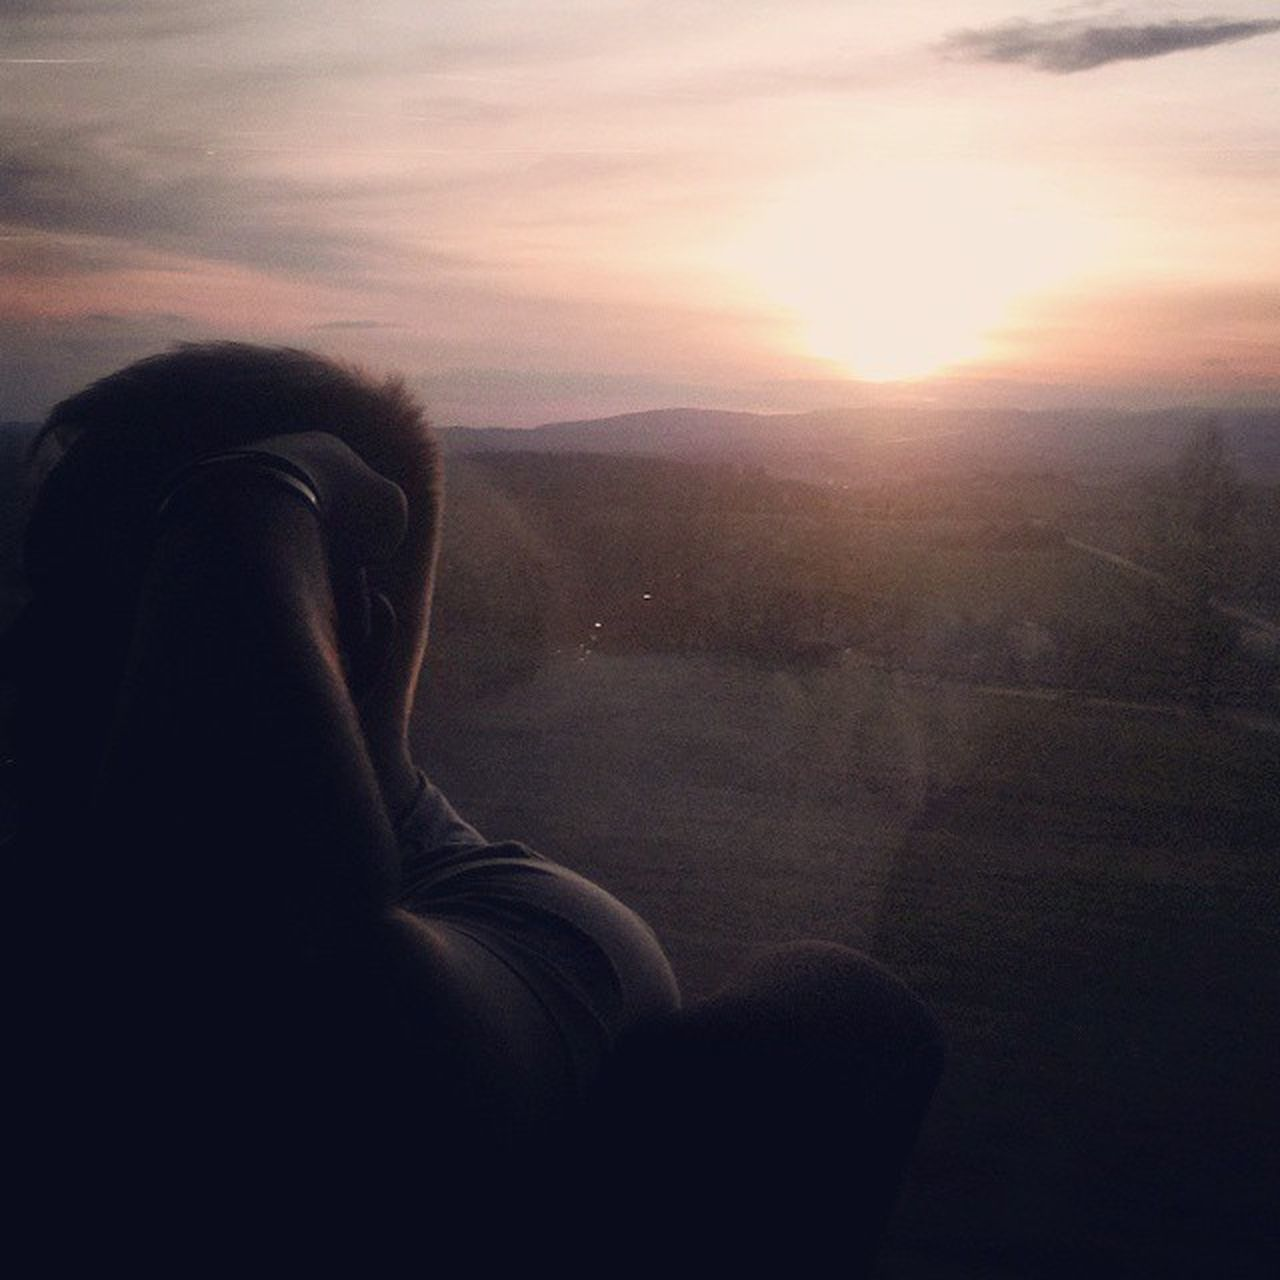 sunset, real people, rear view, one person, sitting, lifestyles, women, nature, sky, indoors, day, people